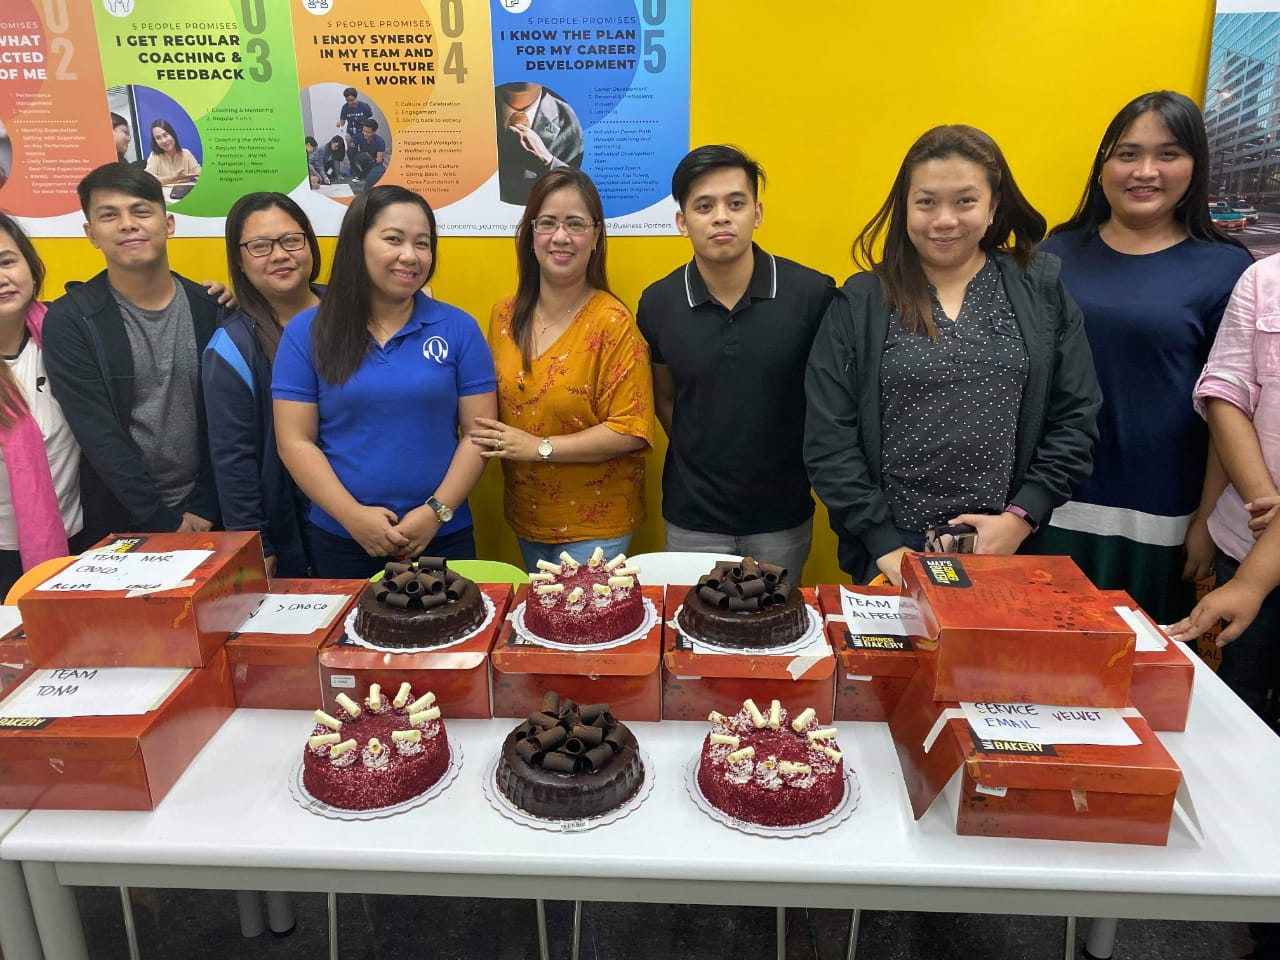 Call Center 3rd Anniversary